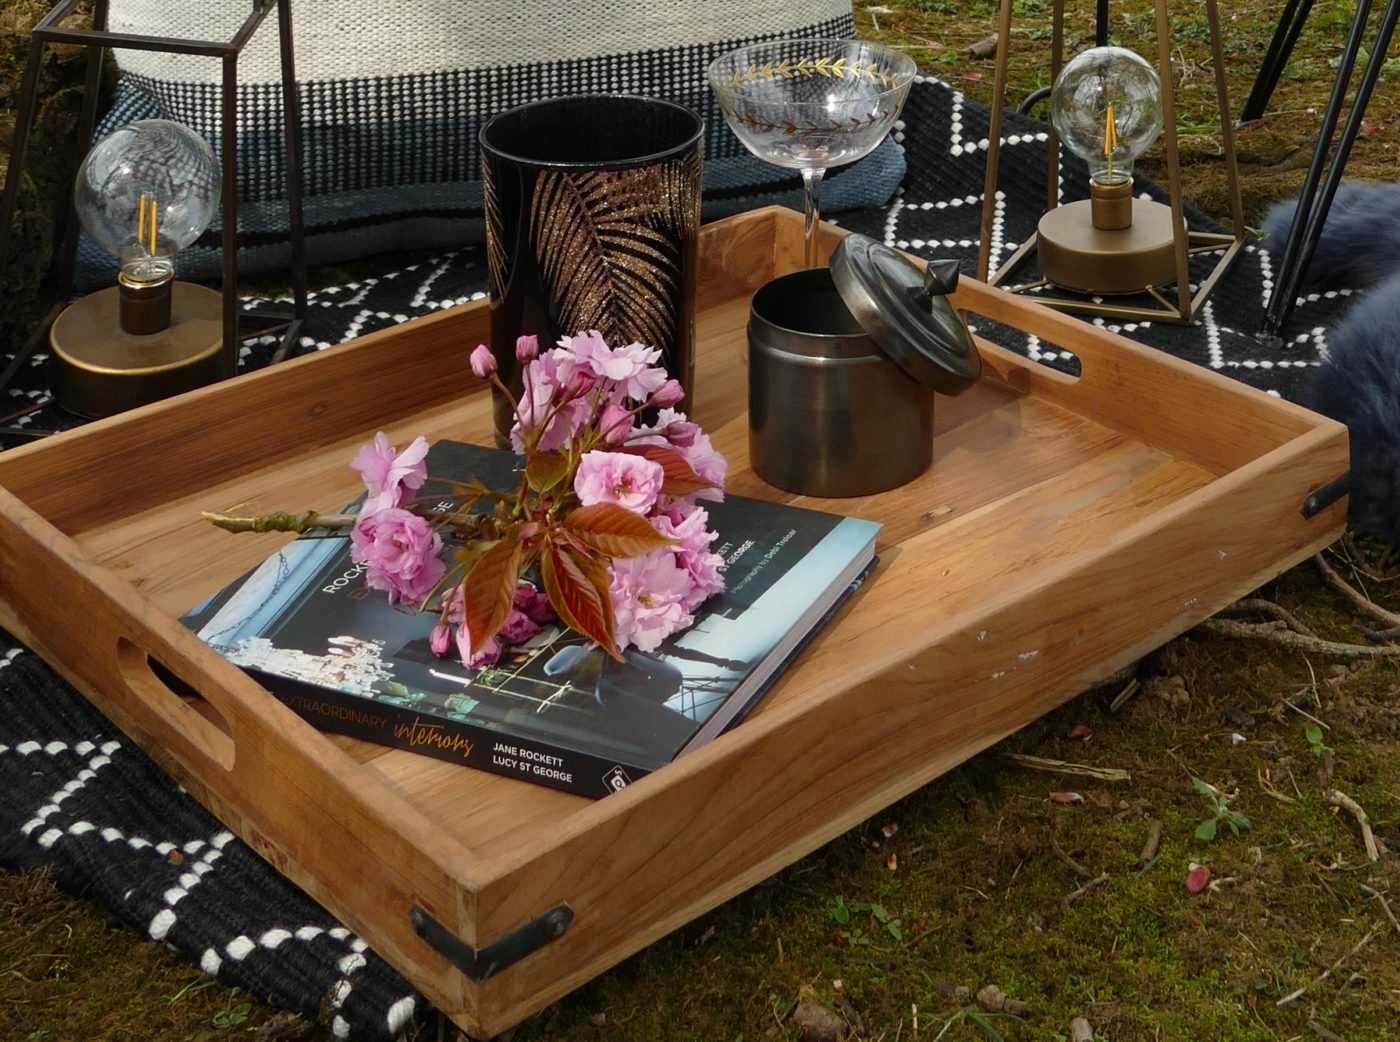 elements upright tray with flowers and book